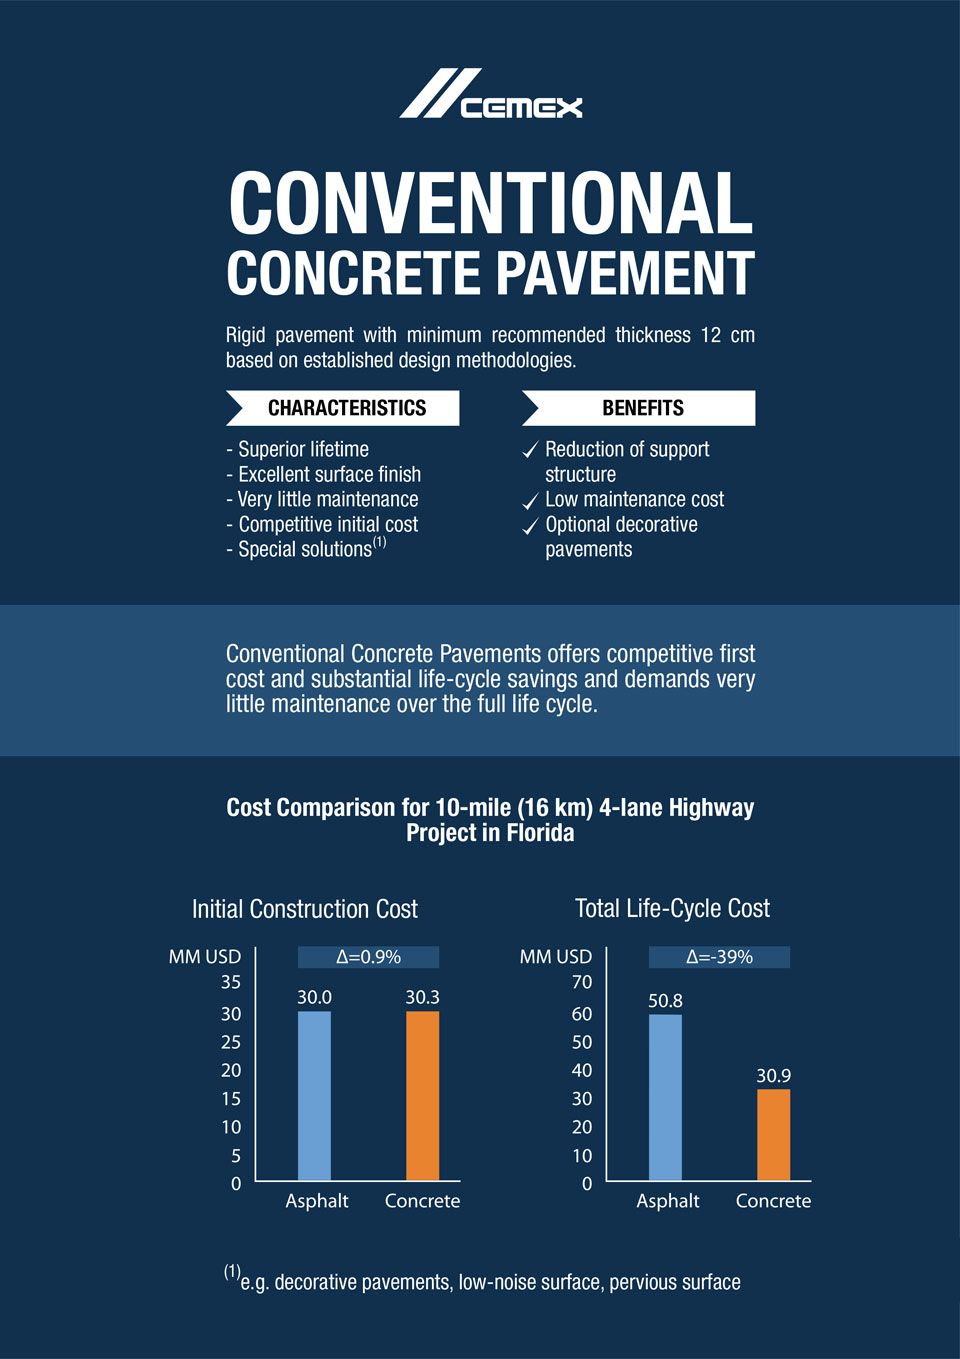 the image shows some characteristcs and benefits of conventional concrete pavement